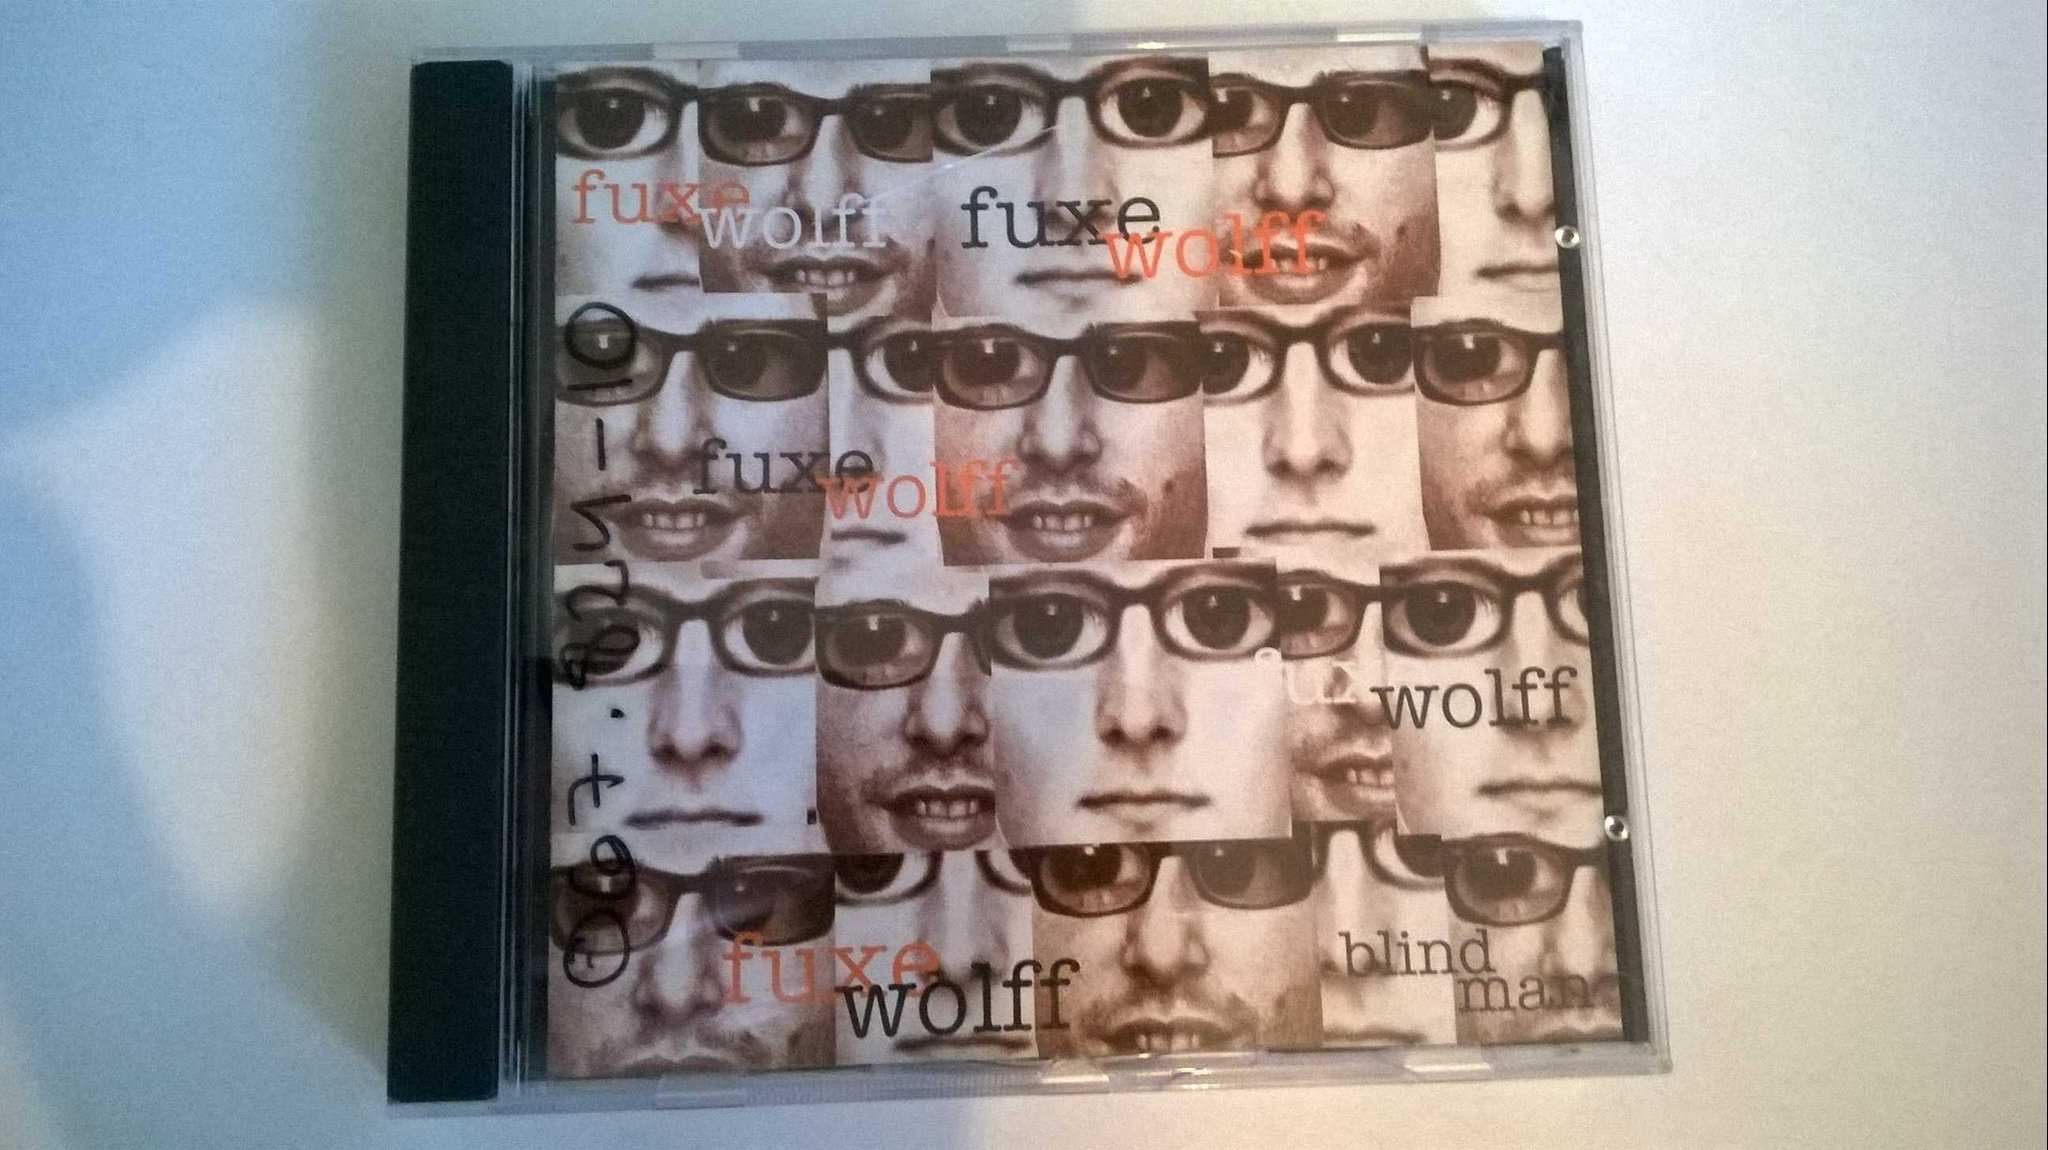 Fuxe Wolff - Blind Man, CD